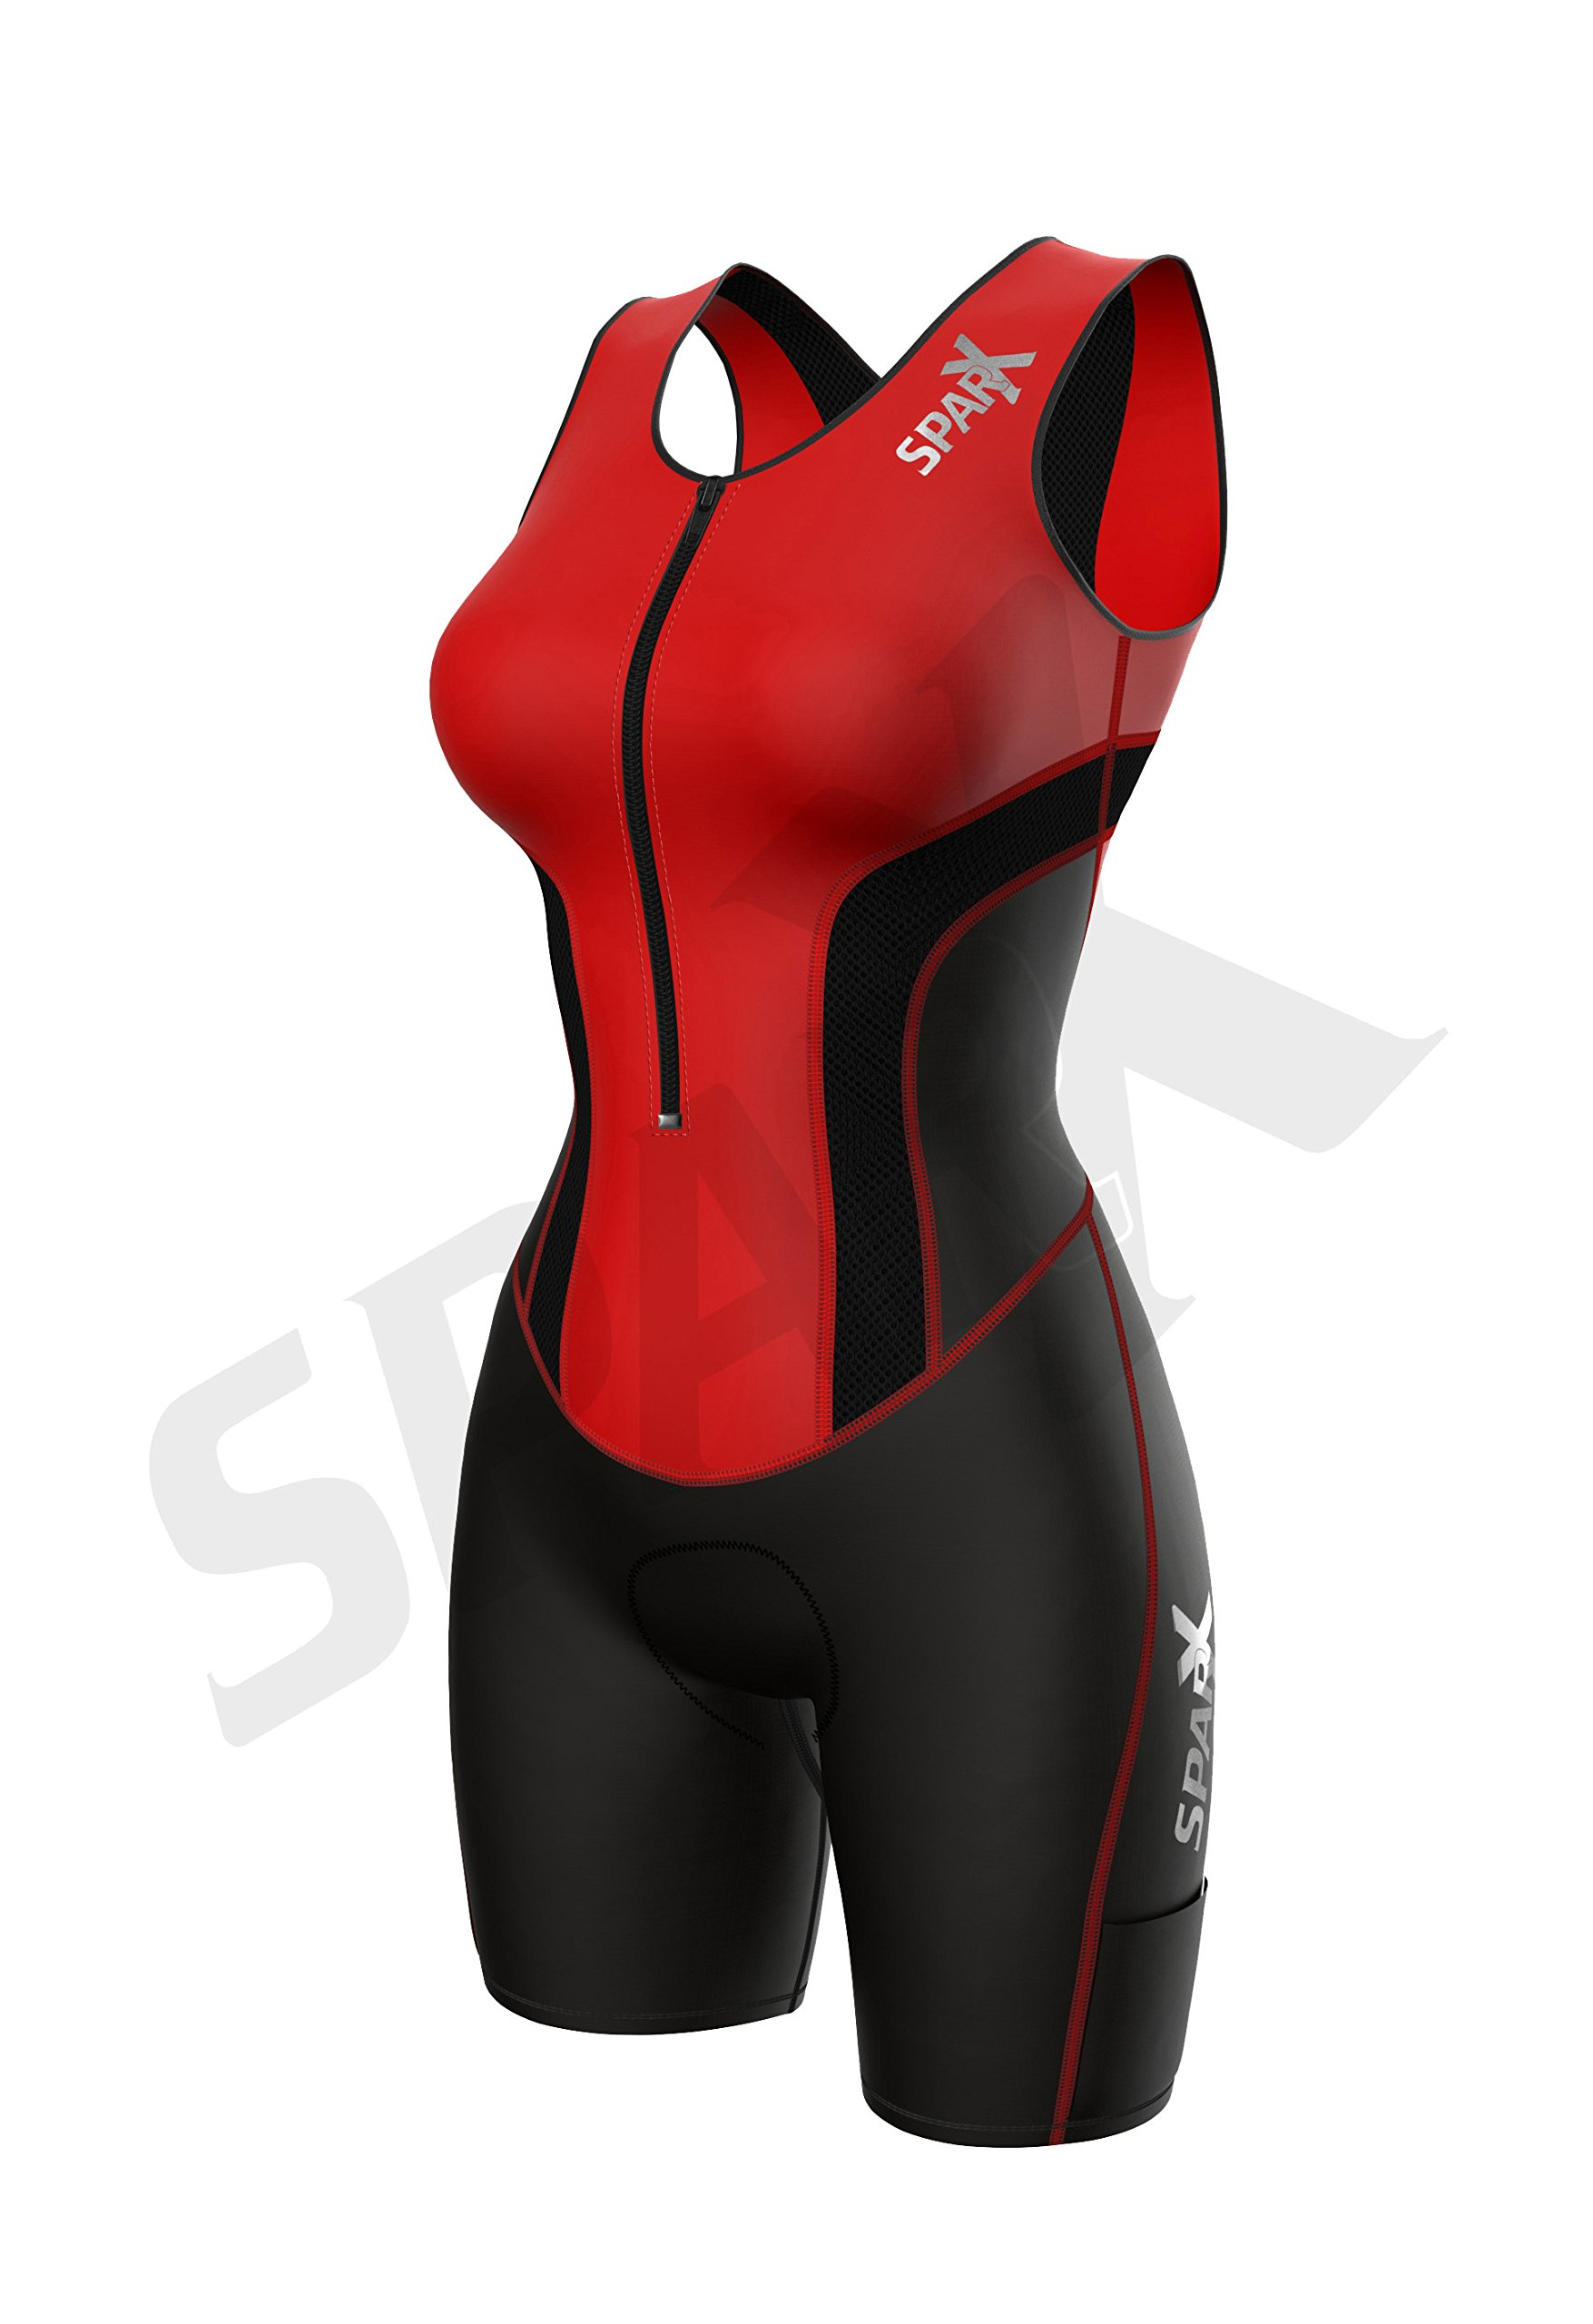 Sparx Women Triathlon Suit Tri Short Racing Cycling Swim Run (Small, Red) by Sparx Sports (Image #3)